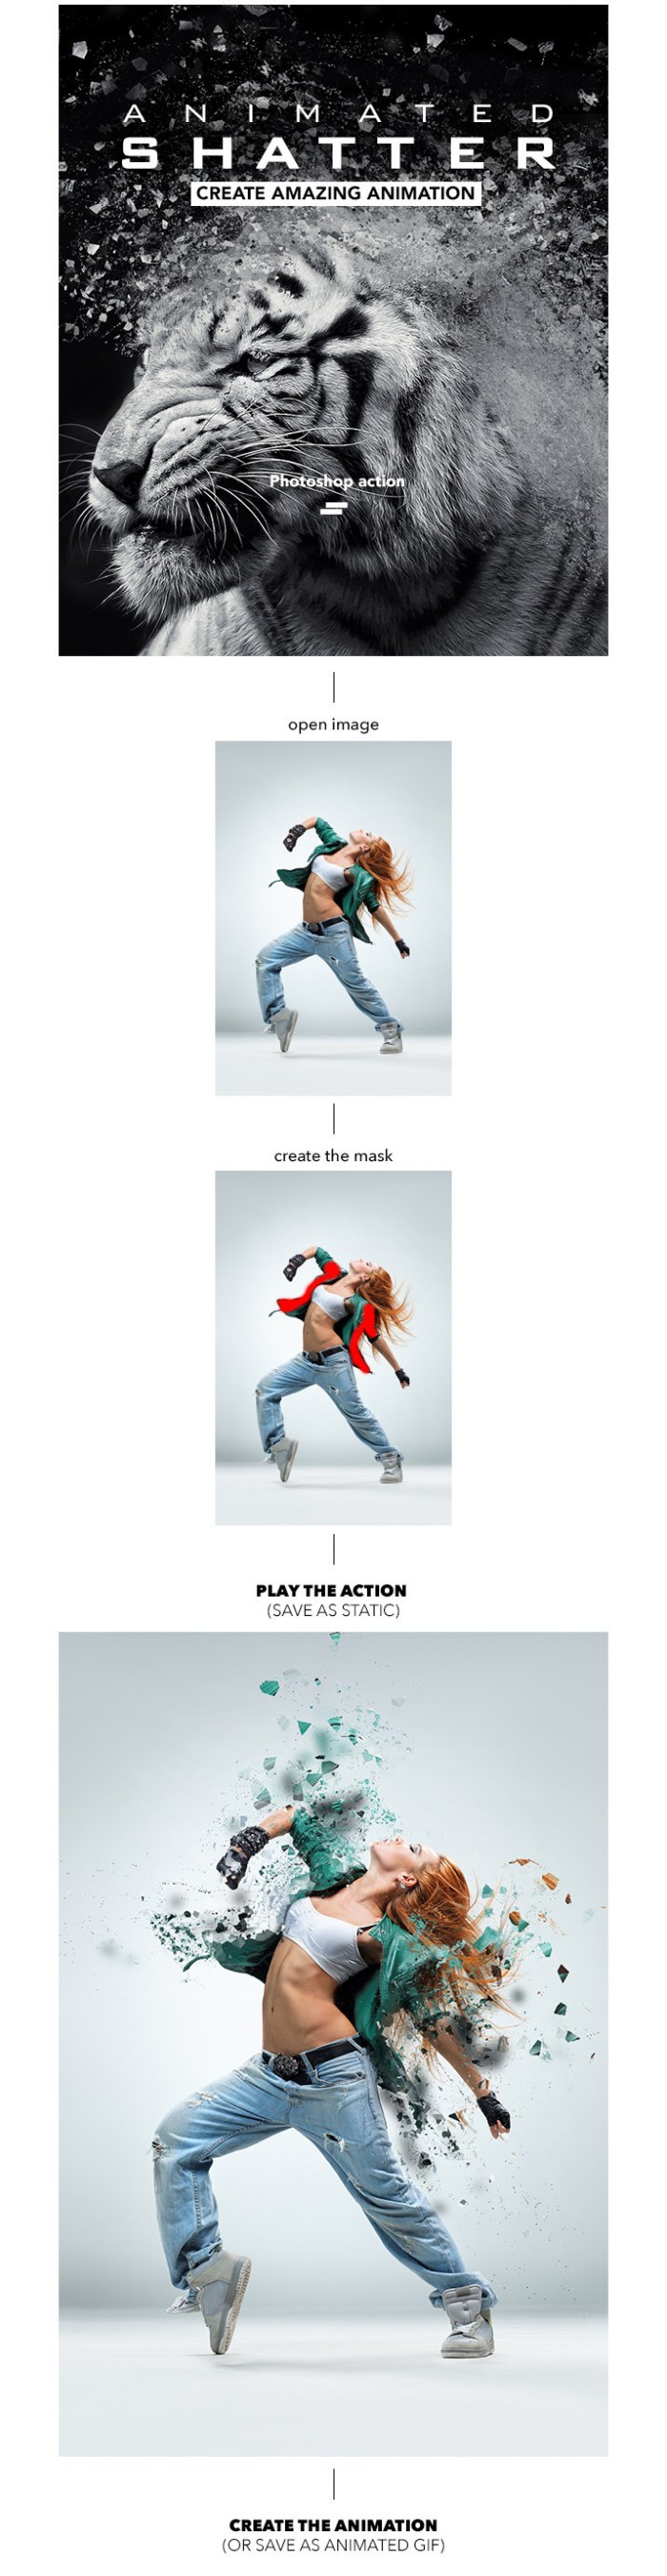 graphicriver_gif_animated_shatter_photoshop_action_18381871